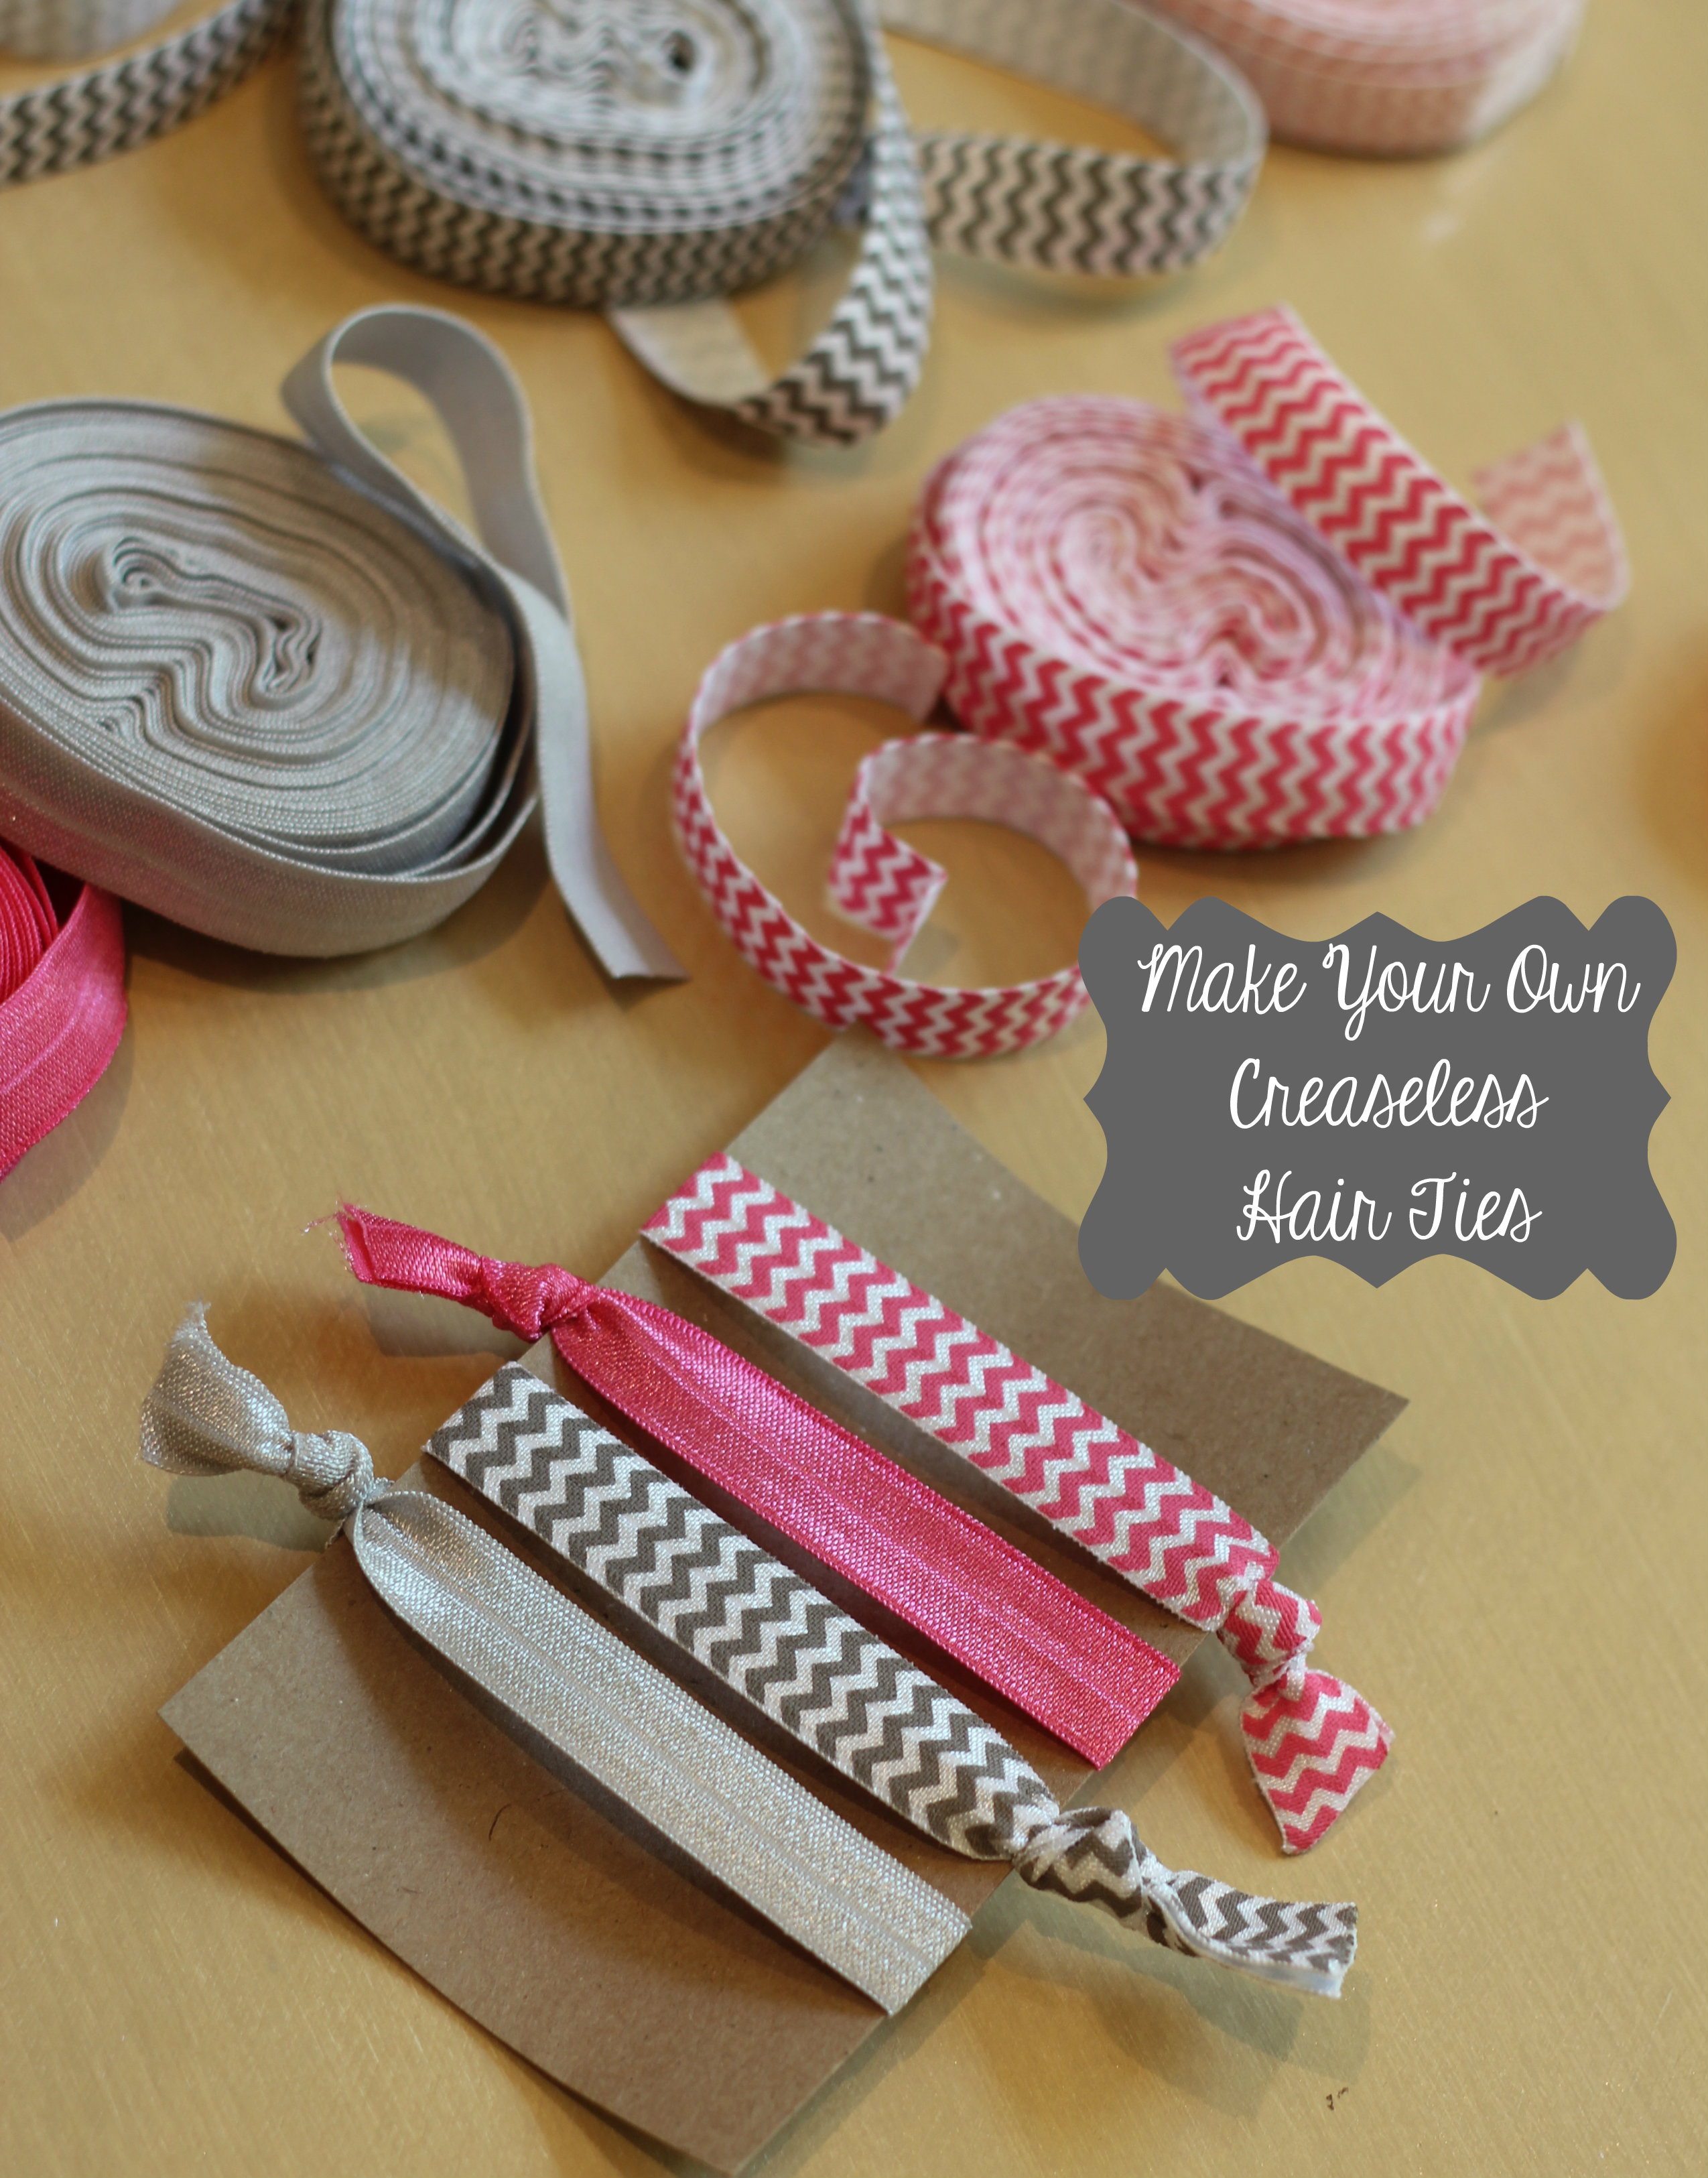 DIY creaseless hair ties - Life in the Green House f8f6e518e4d